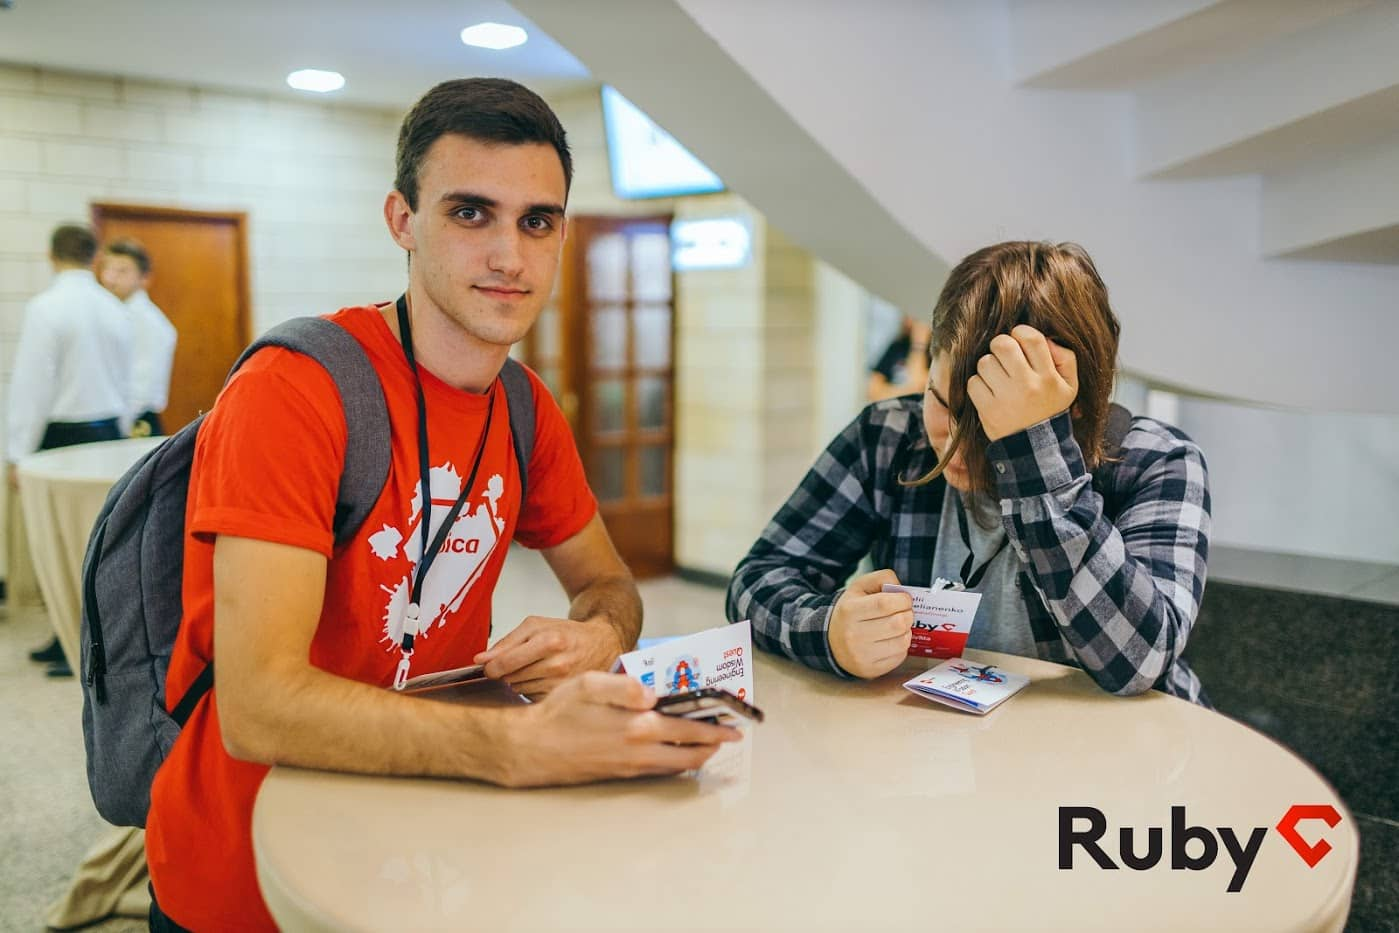 Codica team at RubyC conference